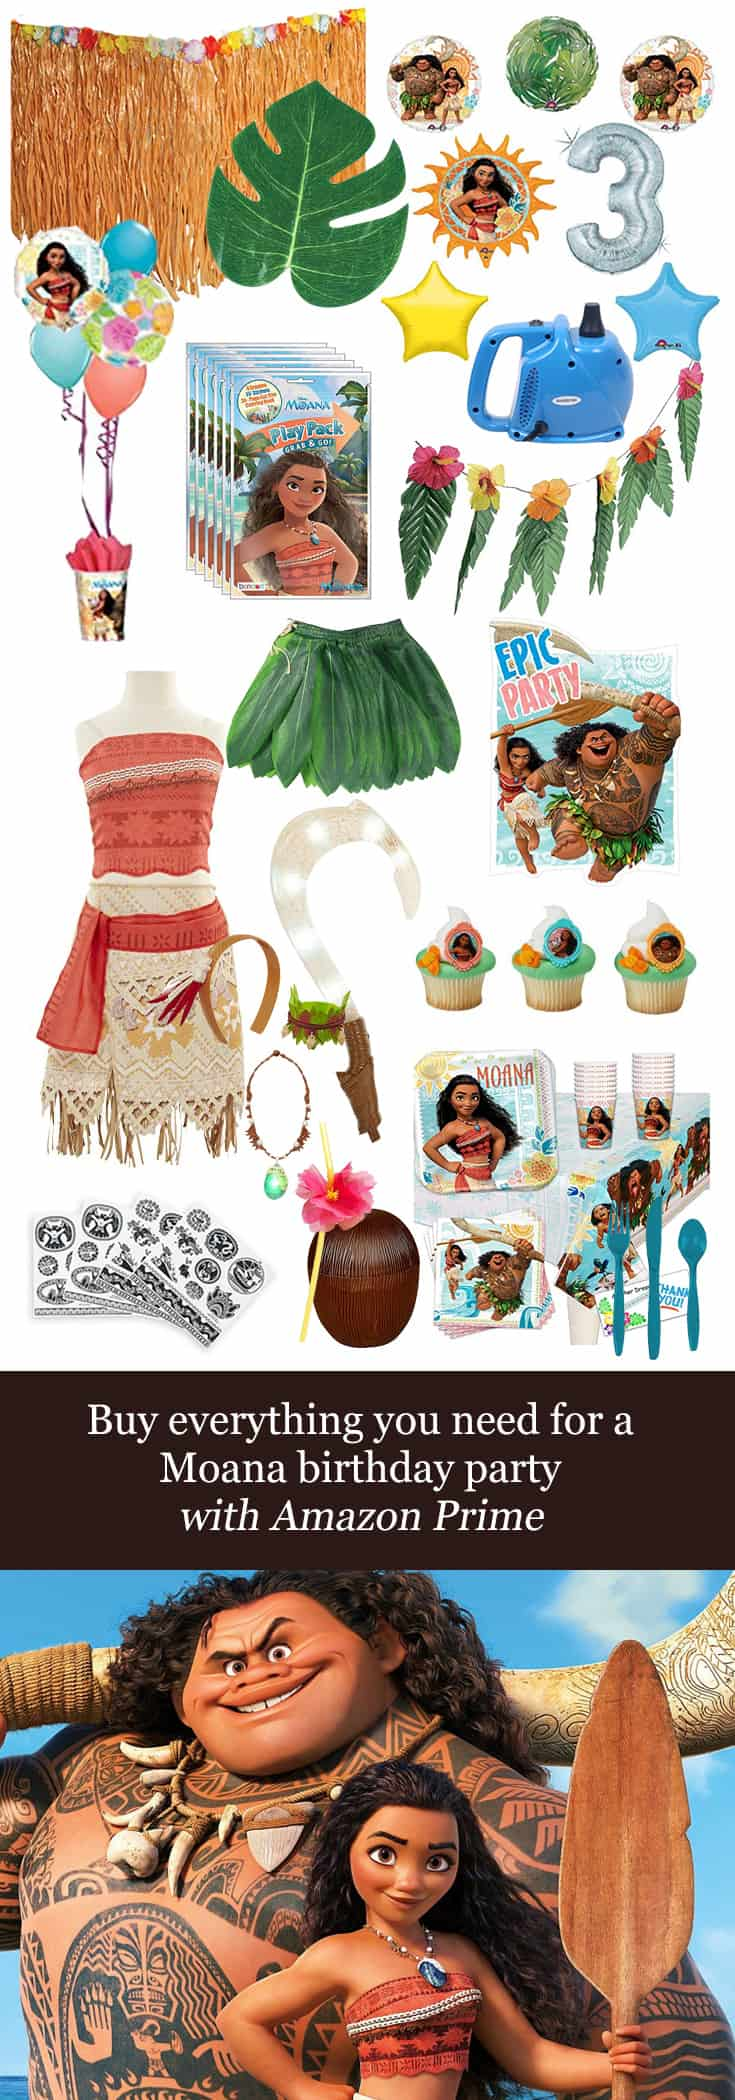 Texas Mom Blogger, Kiss My Tulle, shares how you can buy everything you need for a #Moana #birthday #party with #AmazonPrime!